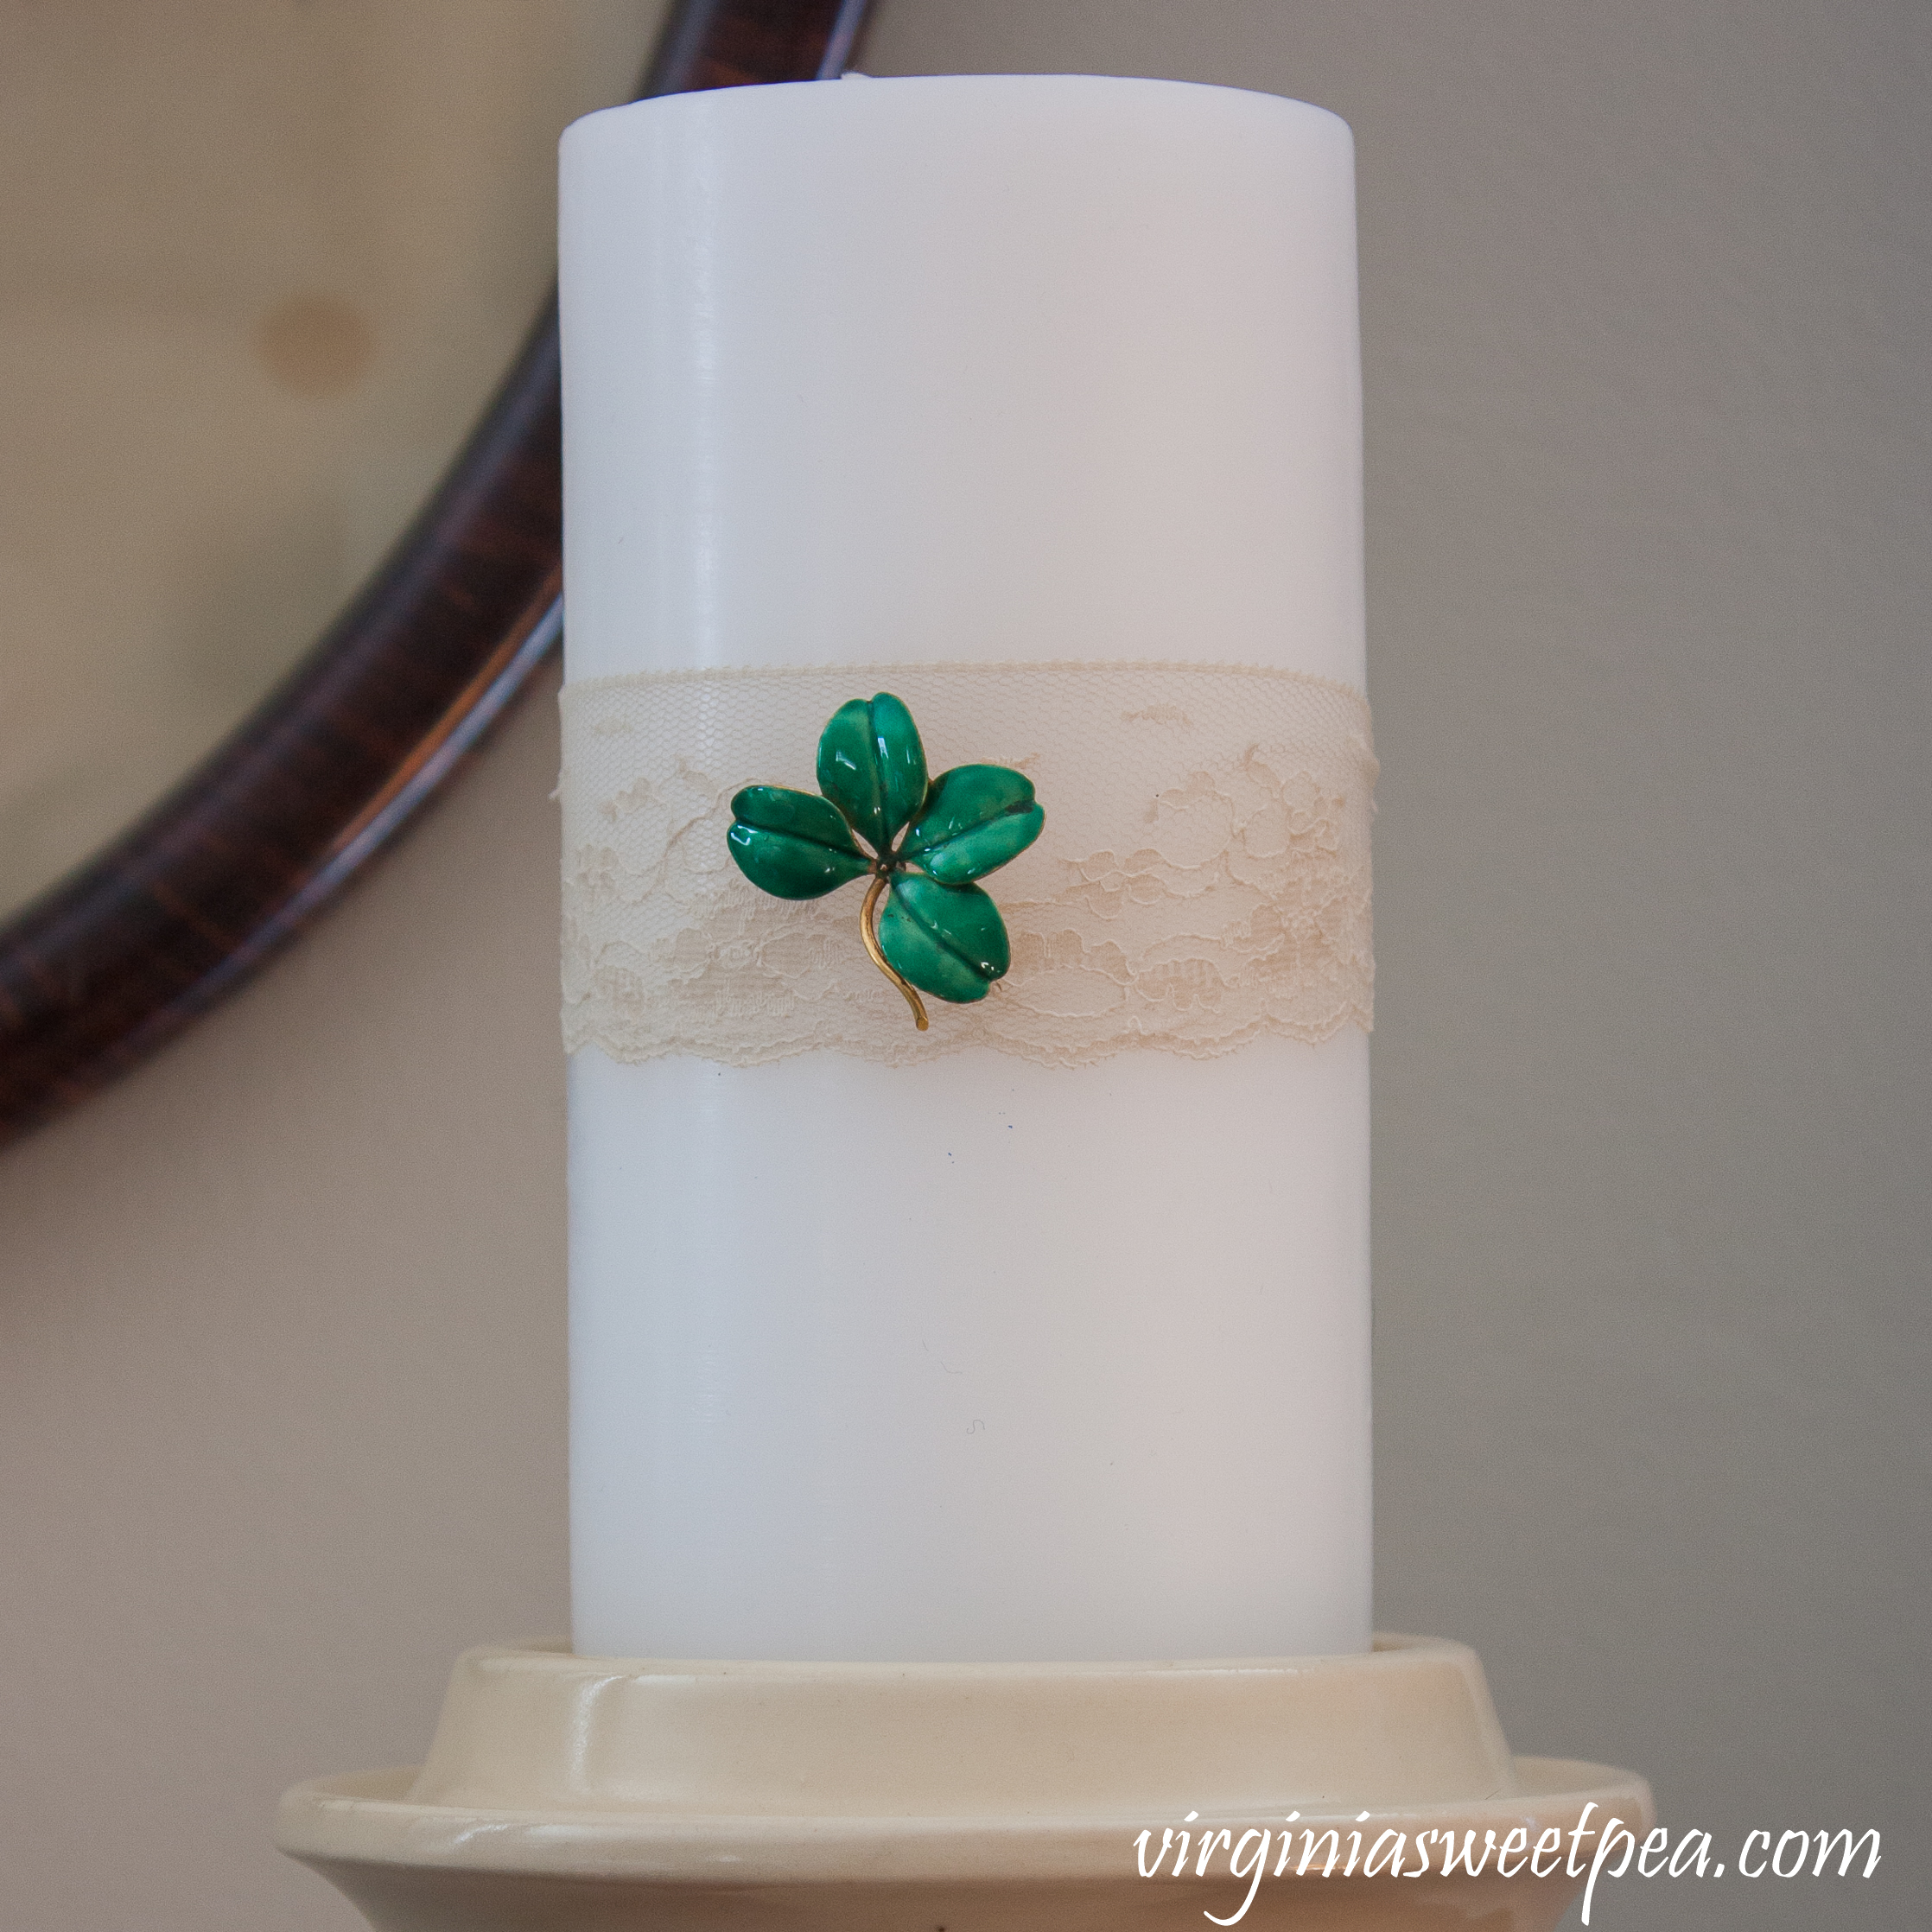 Candle decorated for St. Patrick's Day with lace and a vintage four leaf clover pin. #stpatricksdaydecor #vintagejewelry #fourleafcloverpin